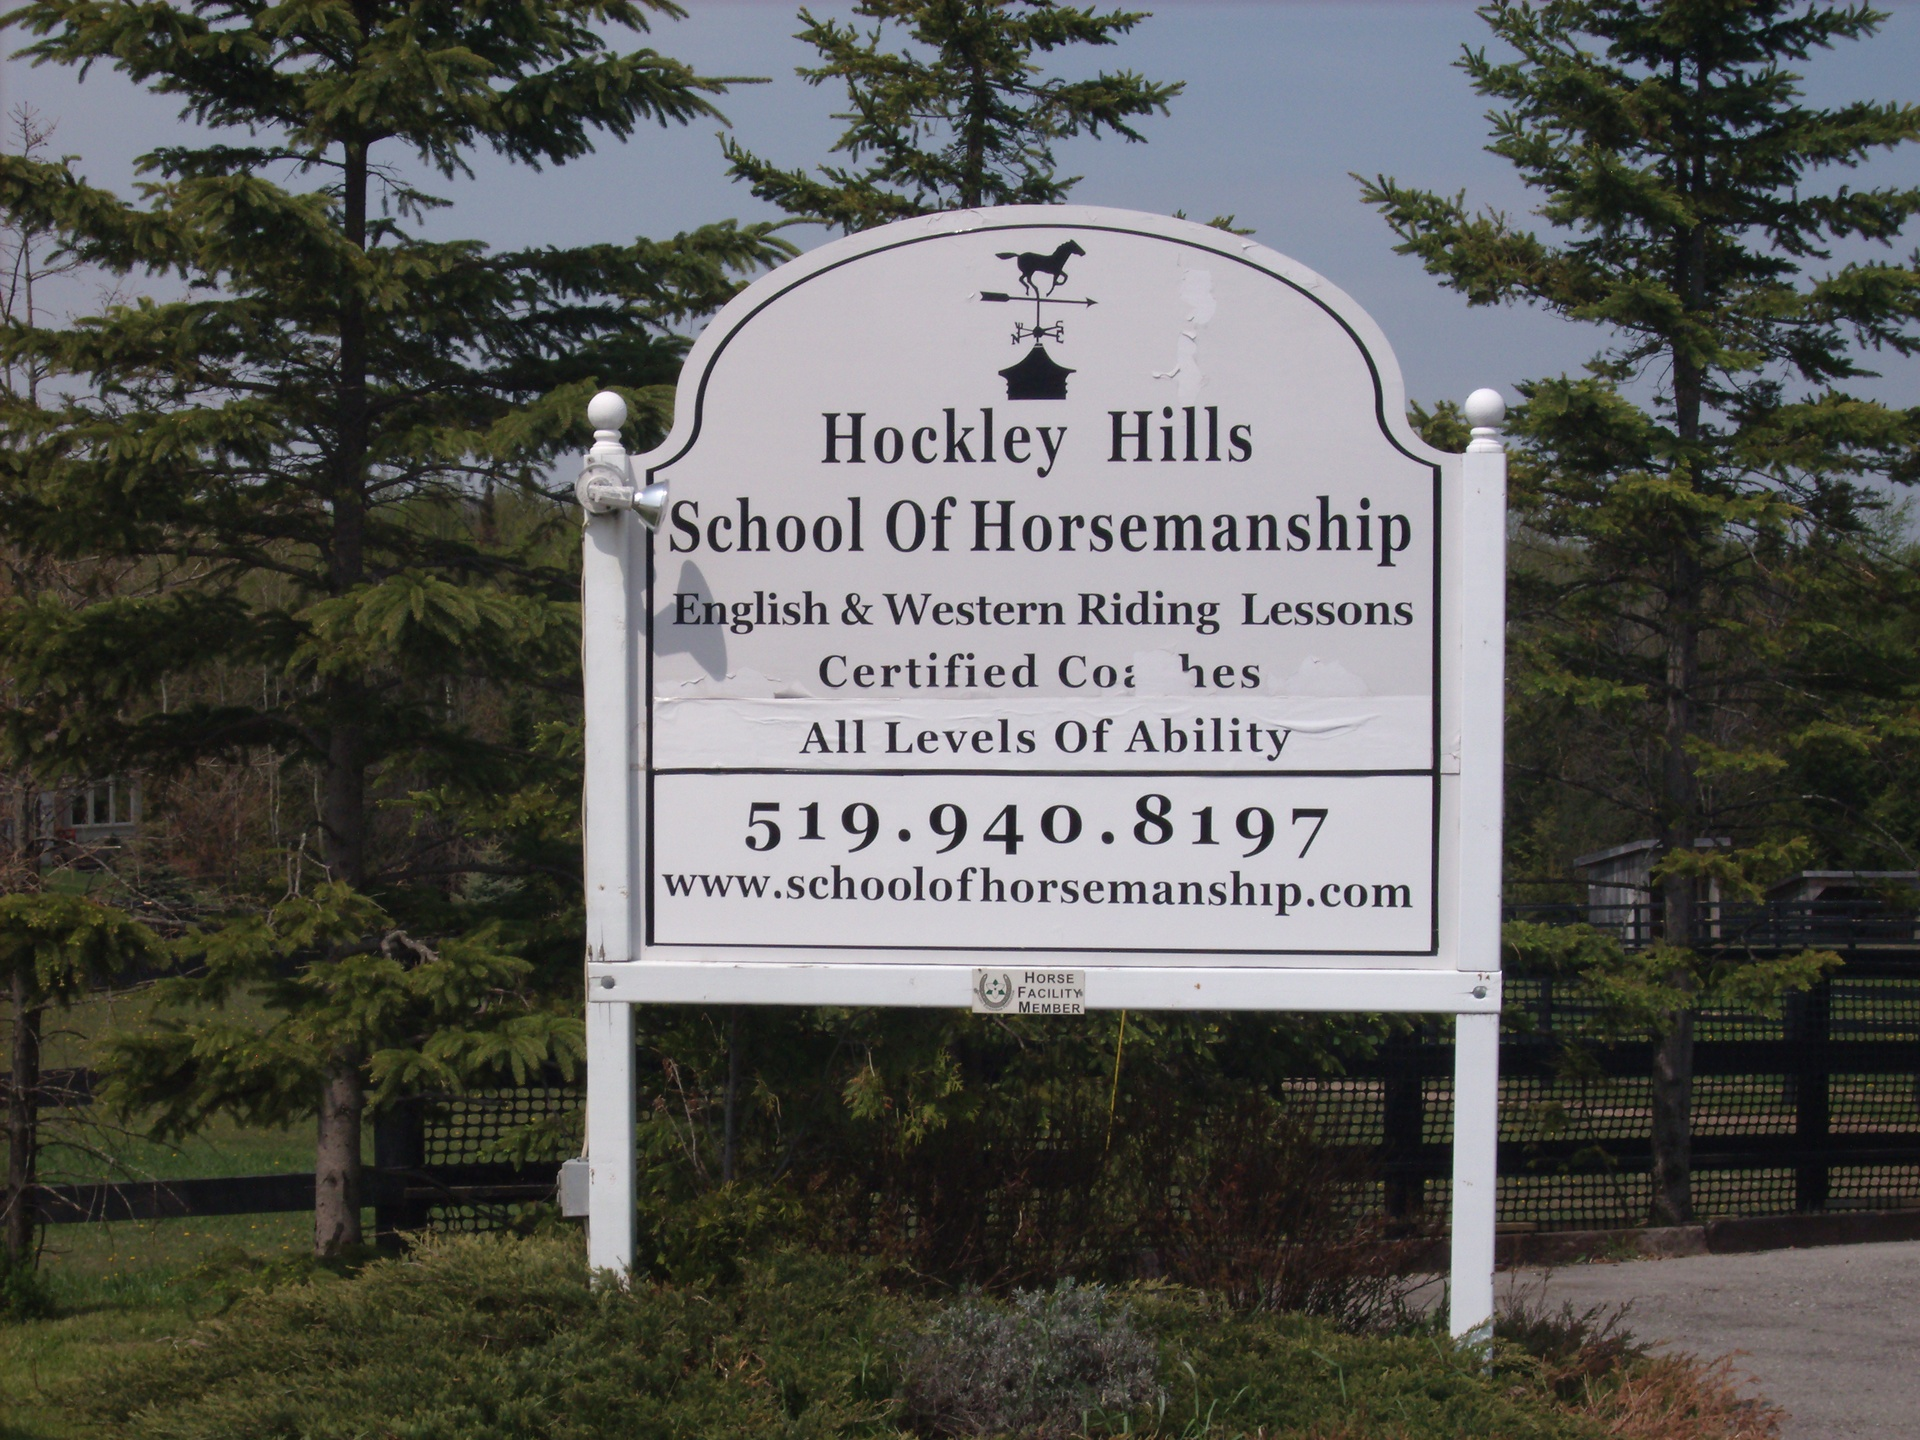 Hockley Hills School of Horsemanship, 246063 County Rd. 16, Mono, Ontario, L9W6K2, Canada